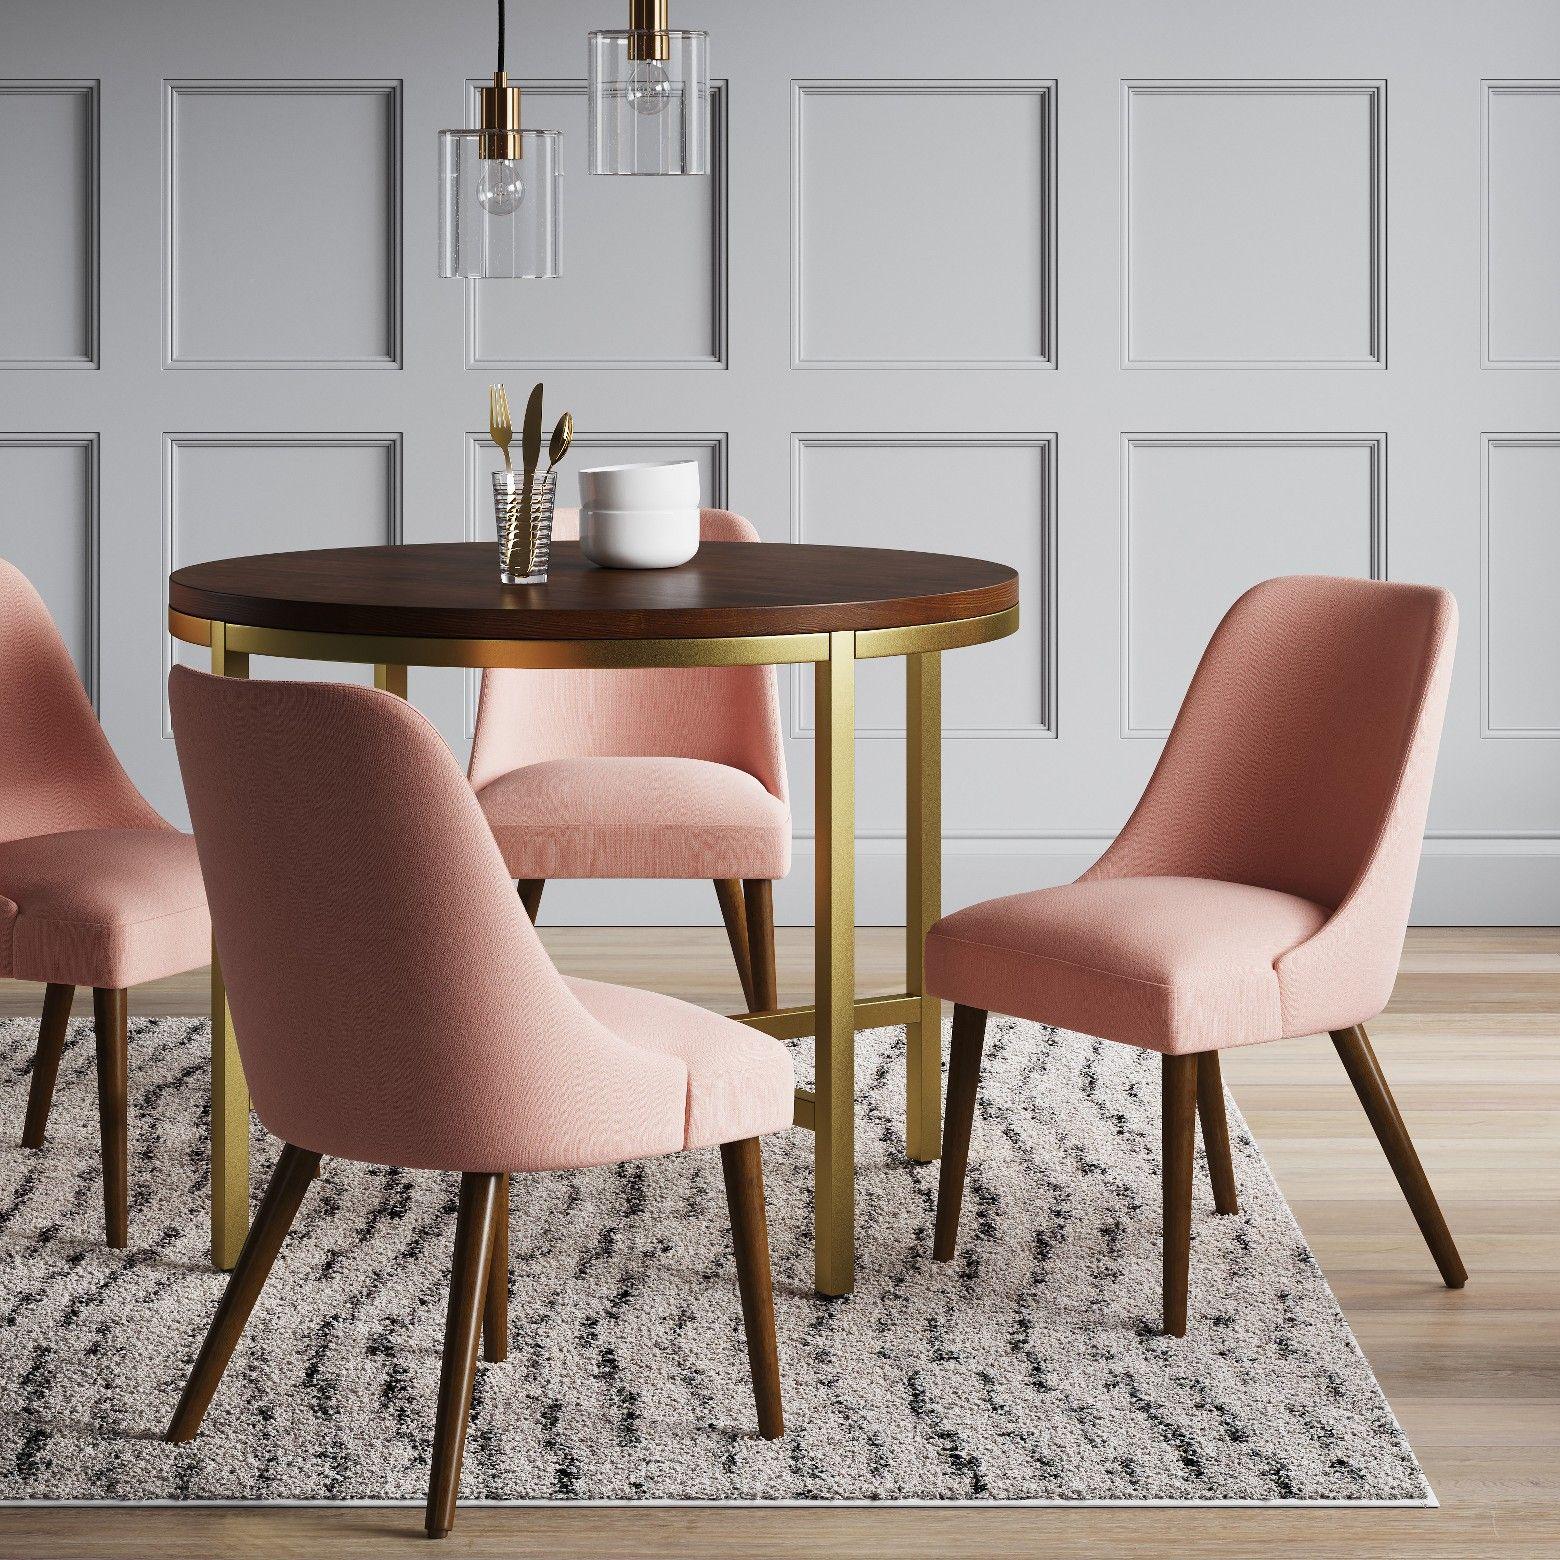 Geller Modern Dining Chair Project 62 Target Round Dining